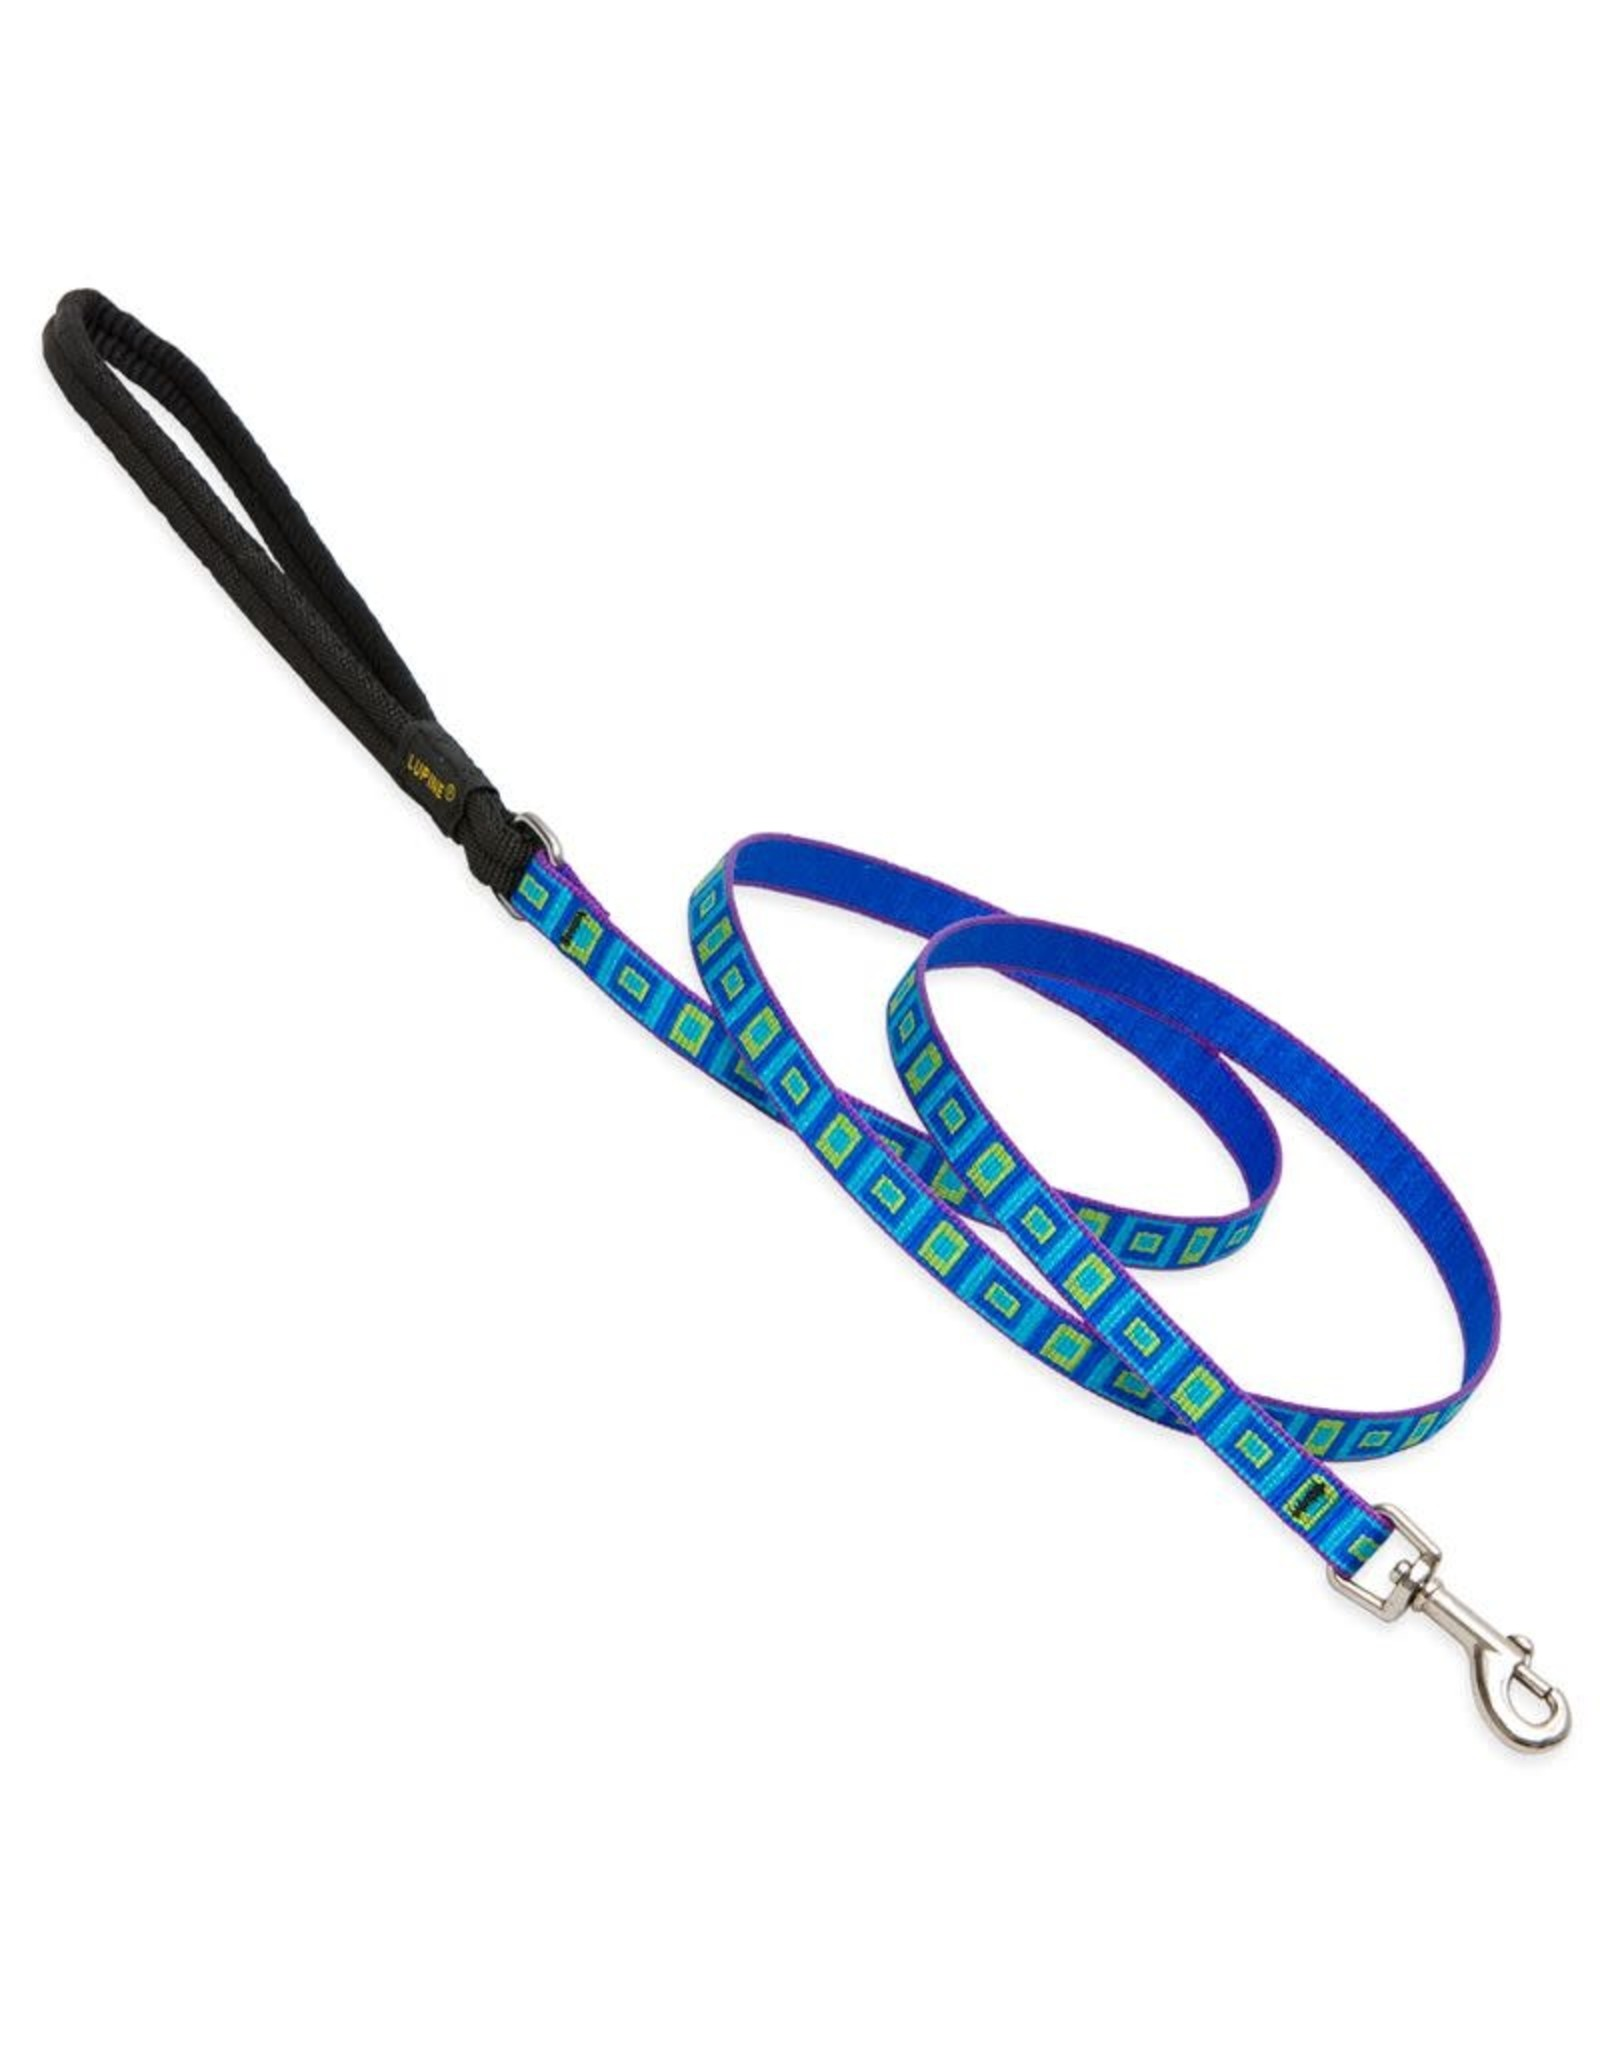 Lupine Lupine Sea Glass Leash: 1/2 in wide, 6 ft